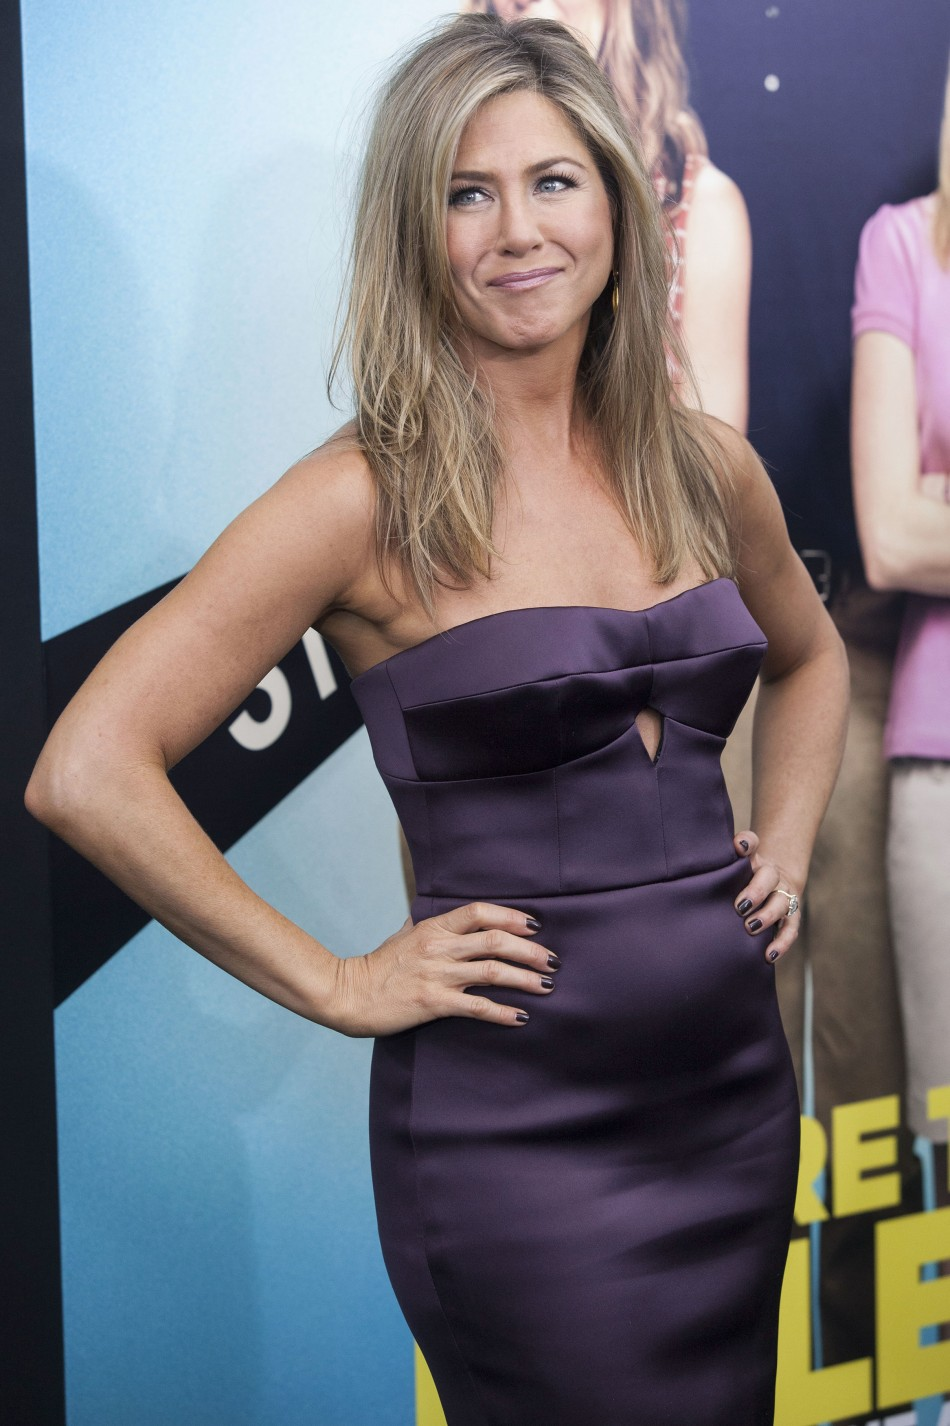 The actress is engaged to Justin Theroux. (Photo: Reuters)